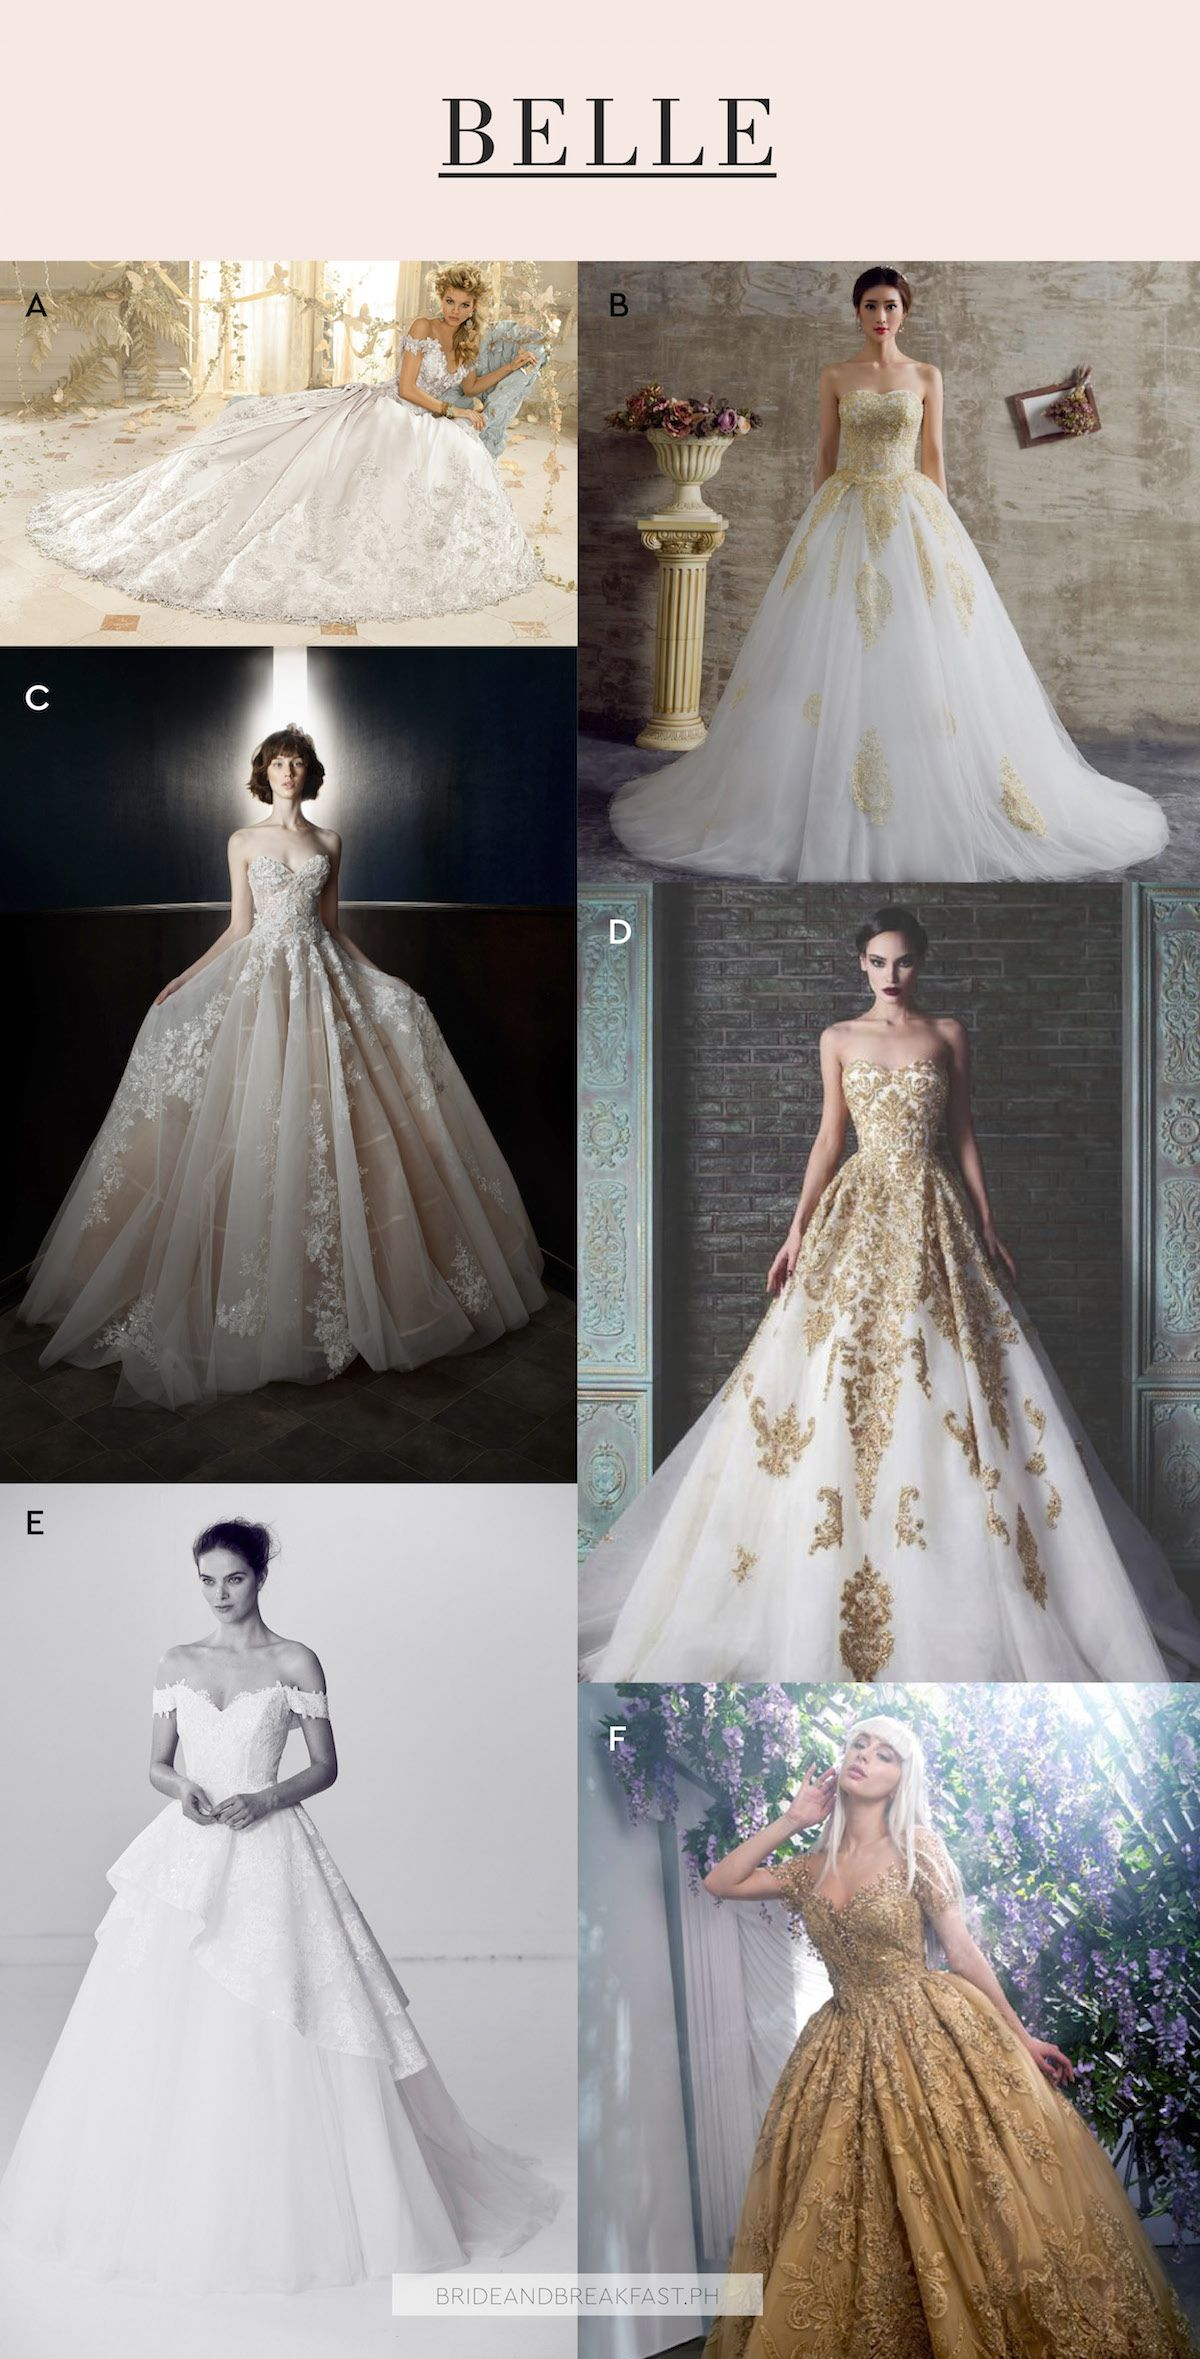 Bridal Dresses With Sleeves | Belle, Wedding dress and Bridal dresses